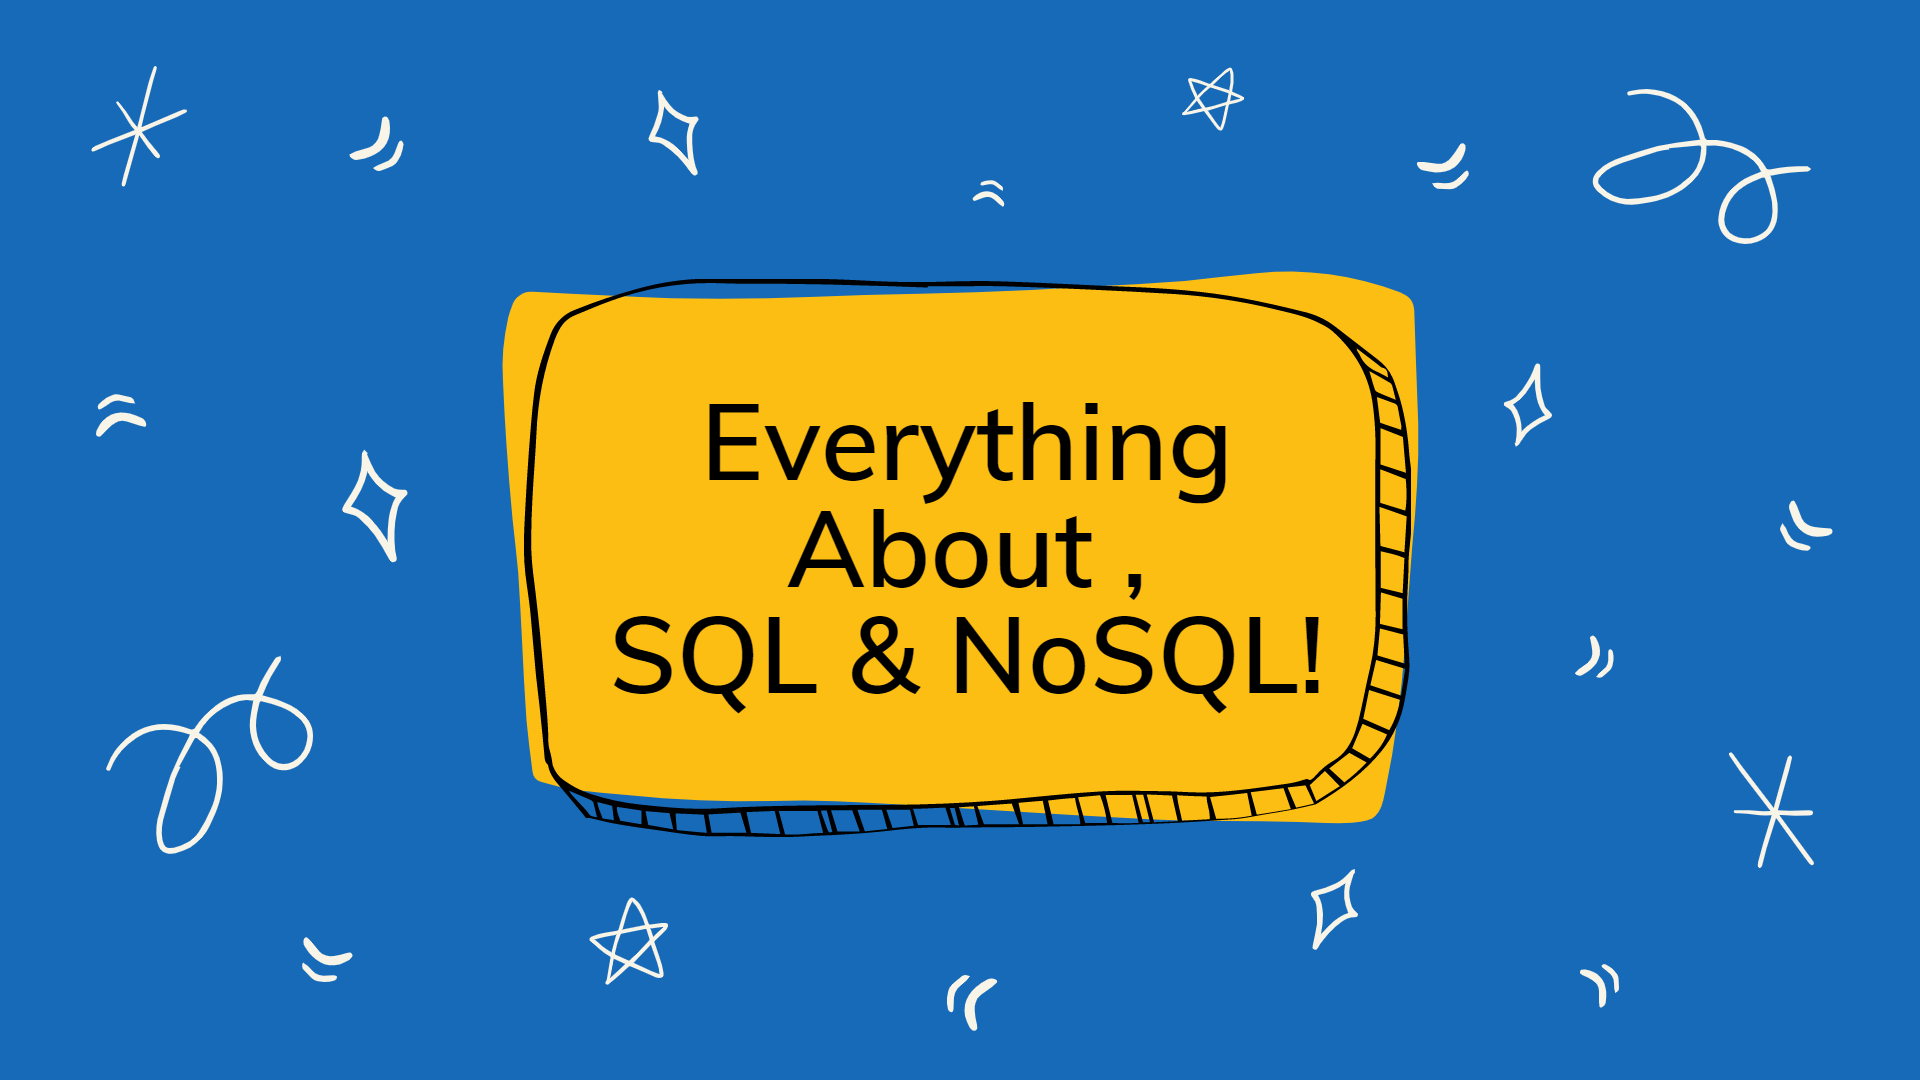 Everything about SQL & NoSQL